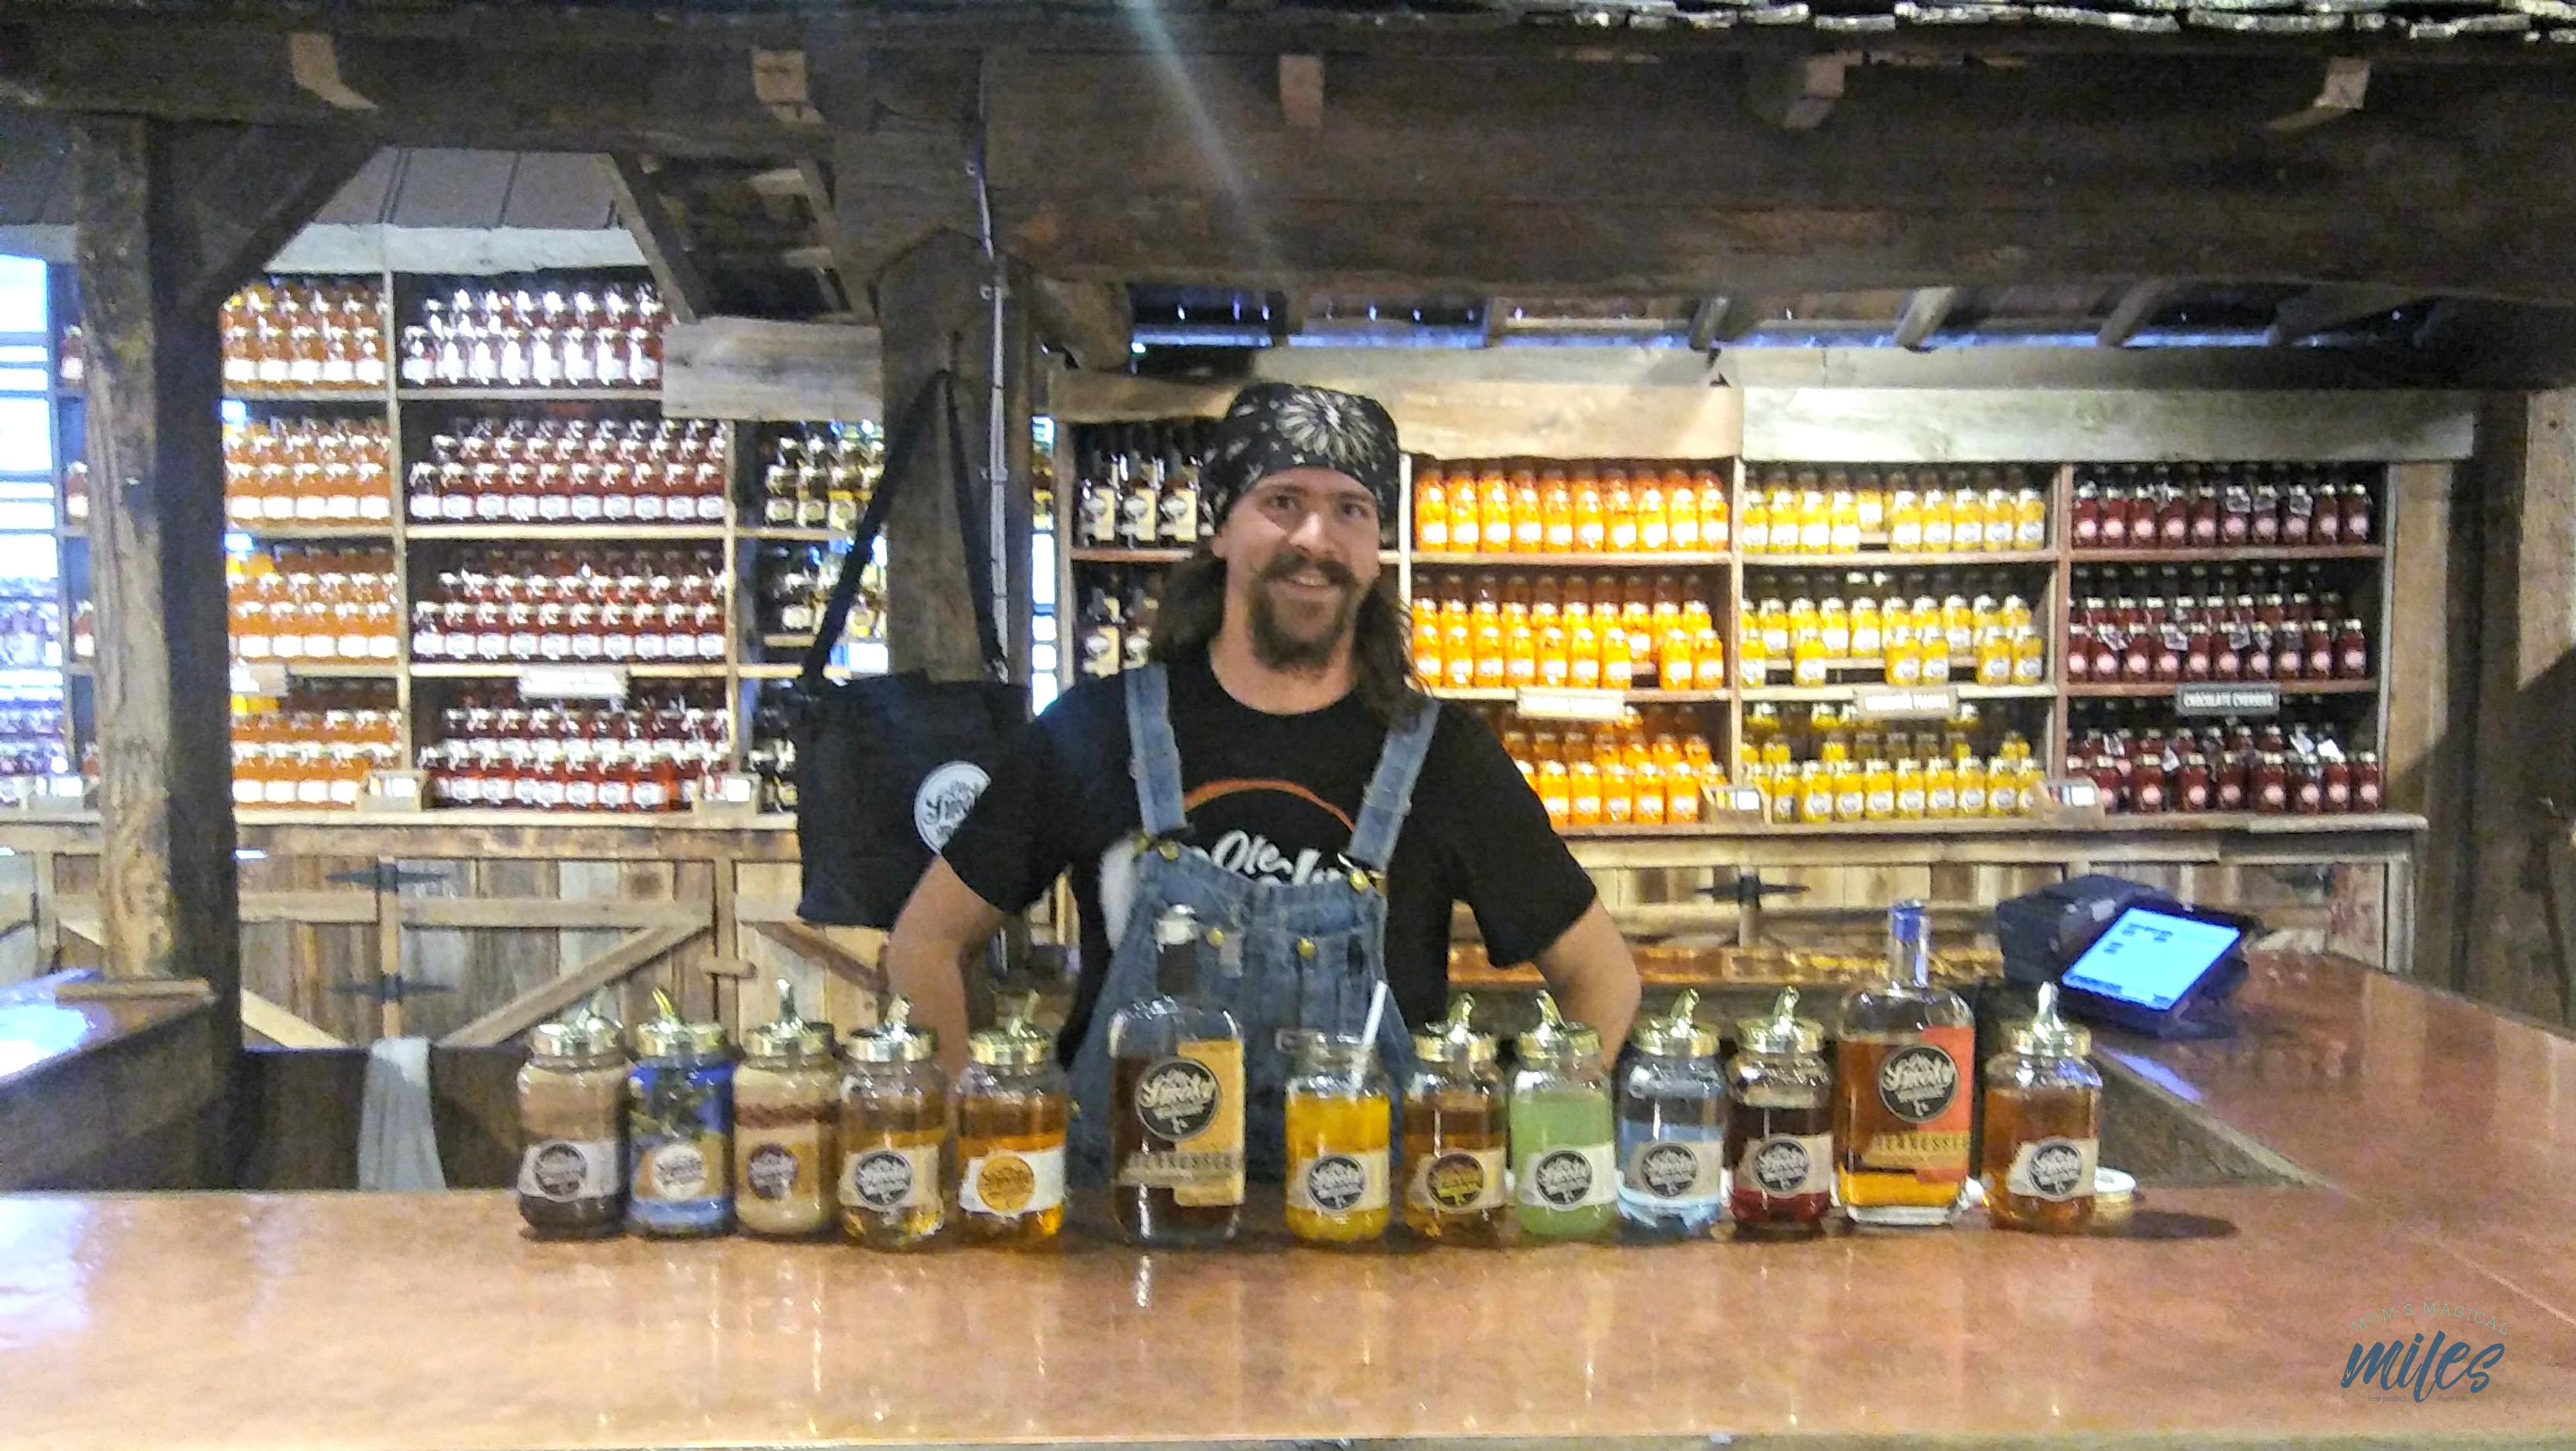 If you are in Gatlinburg, get a taste of a regional tradition - moonshine! With all the flavors available, you're sure to find one to take home and enjoy!